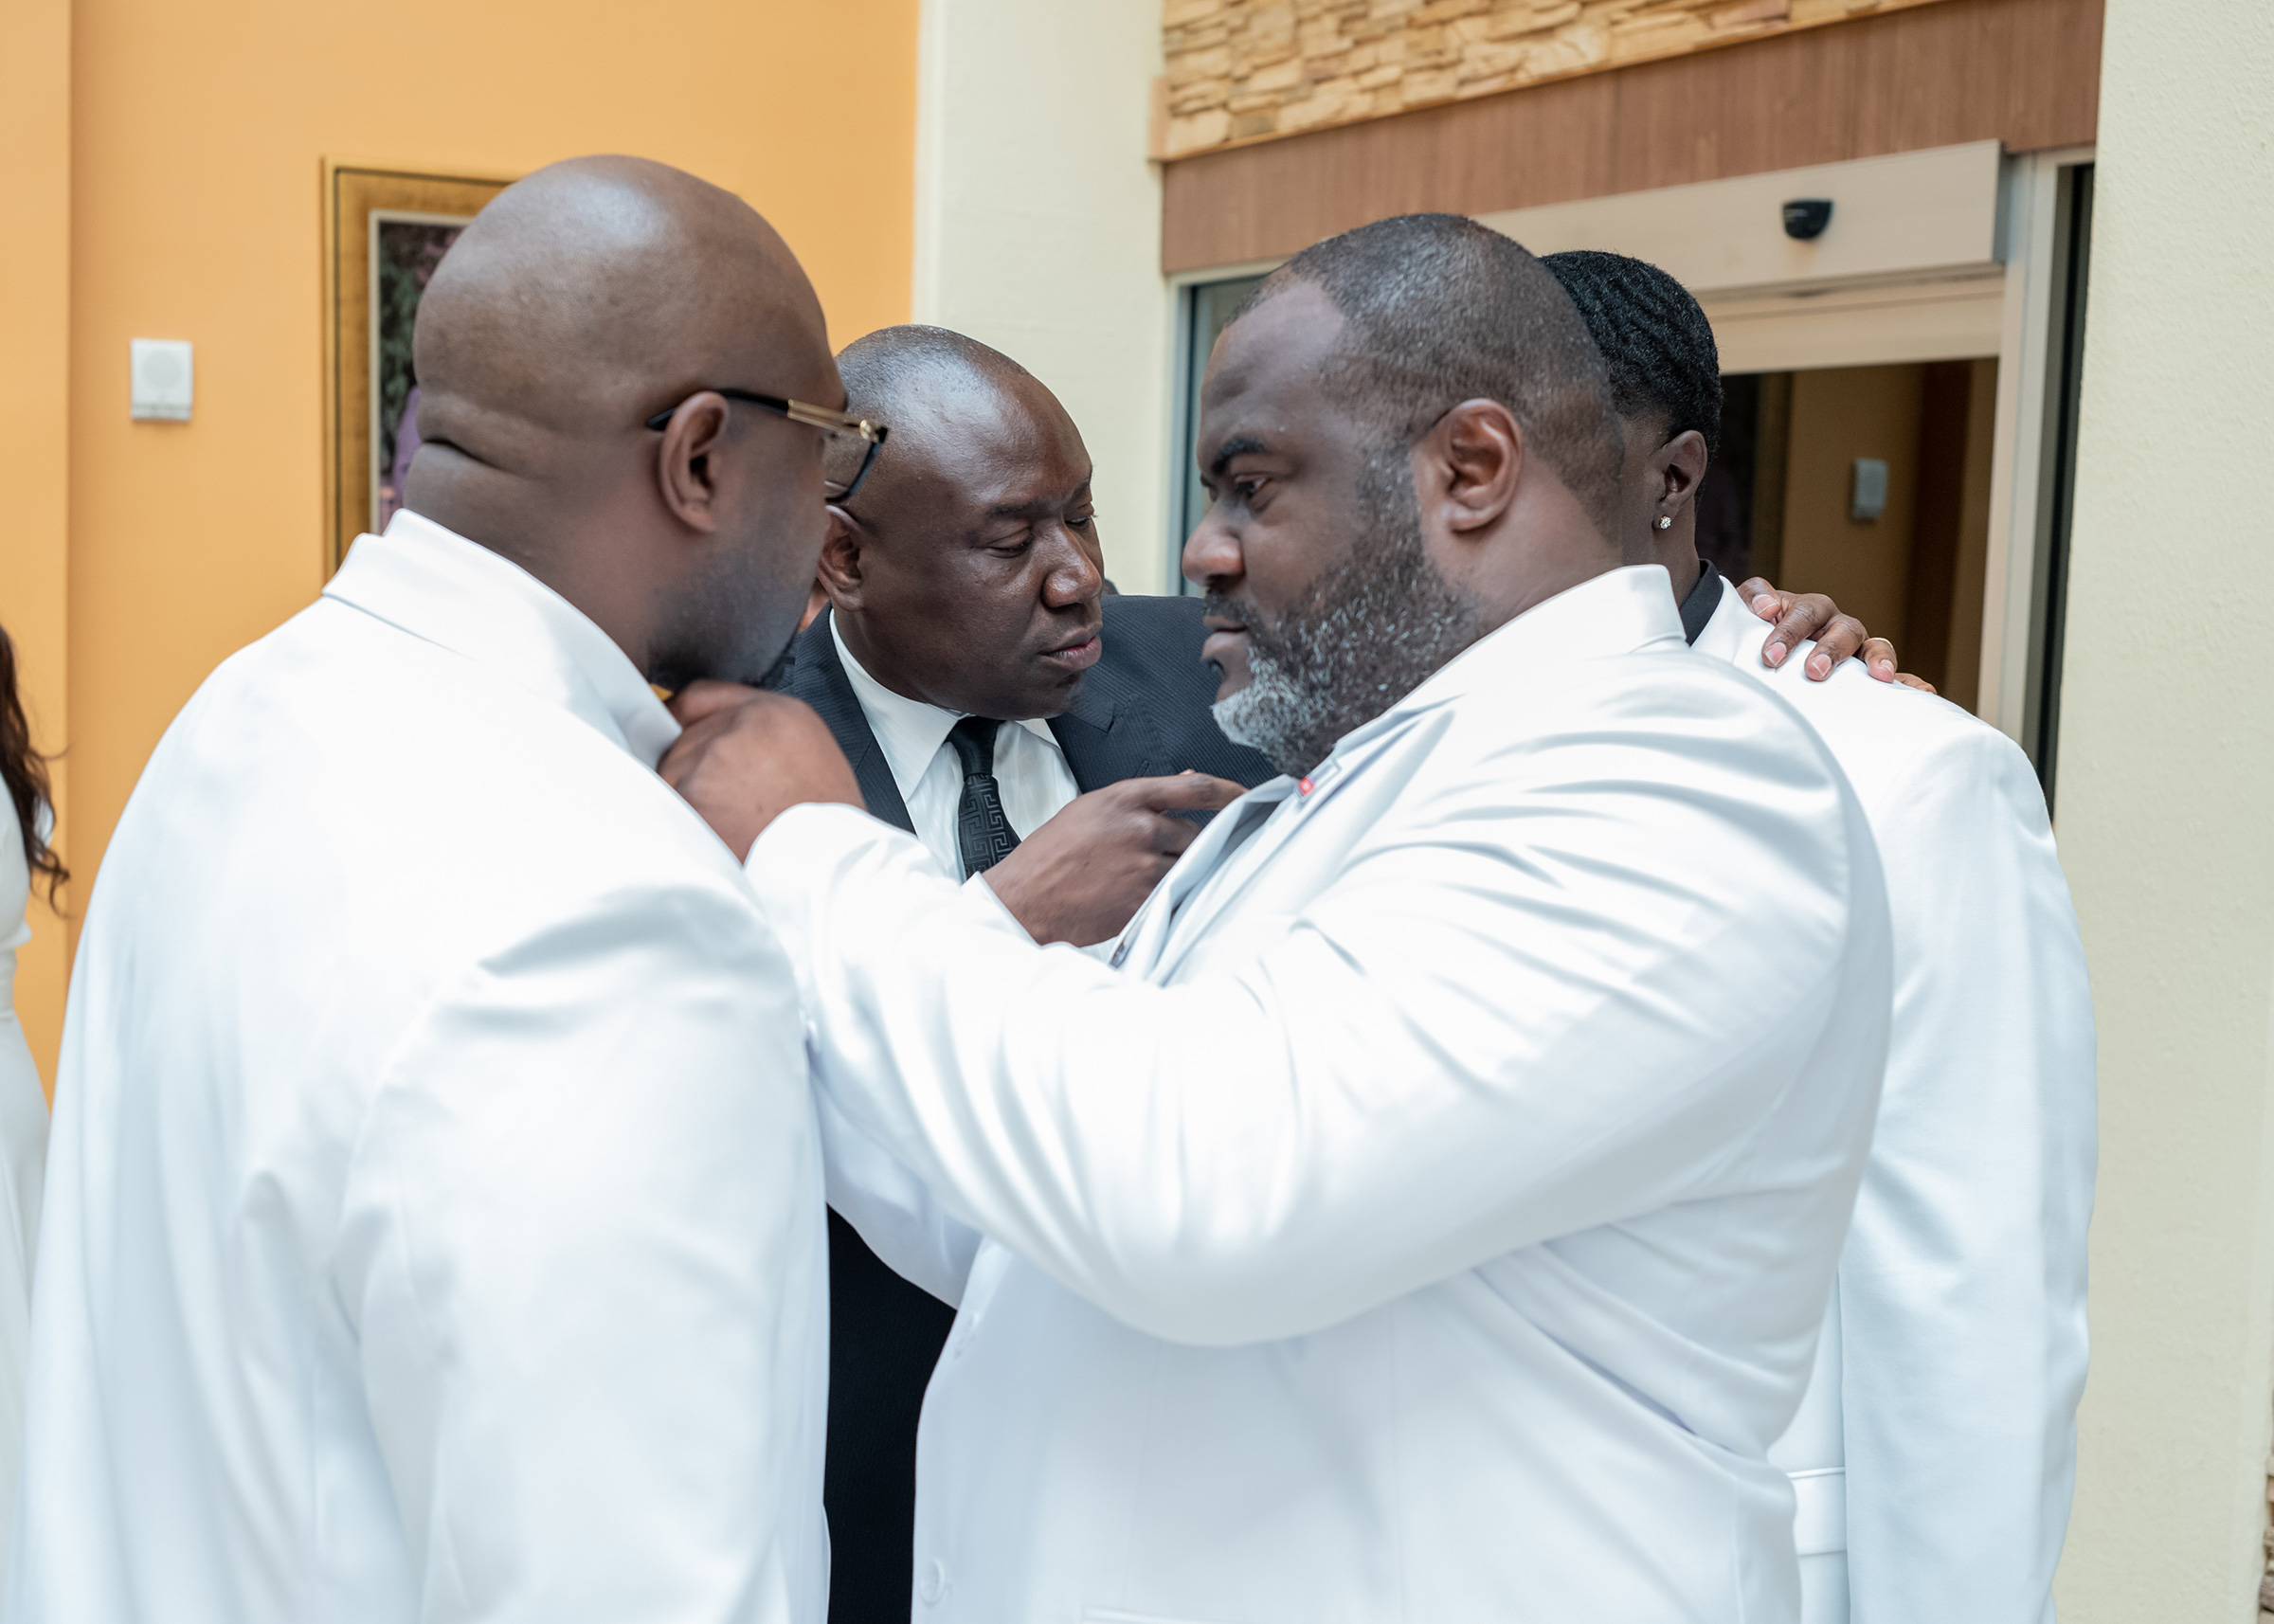 George Floyd's brothers Rodney (right) and Philonise (left) prepare for the funeral with lawyer Ben Crump (center) on June 9.